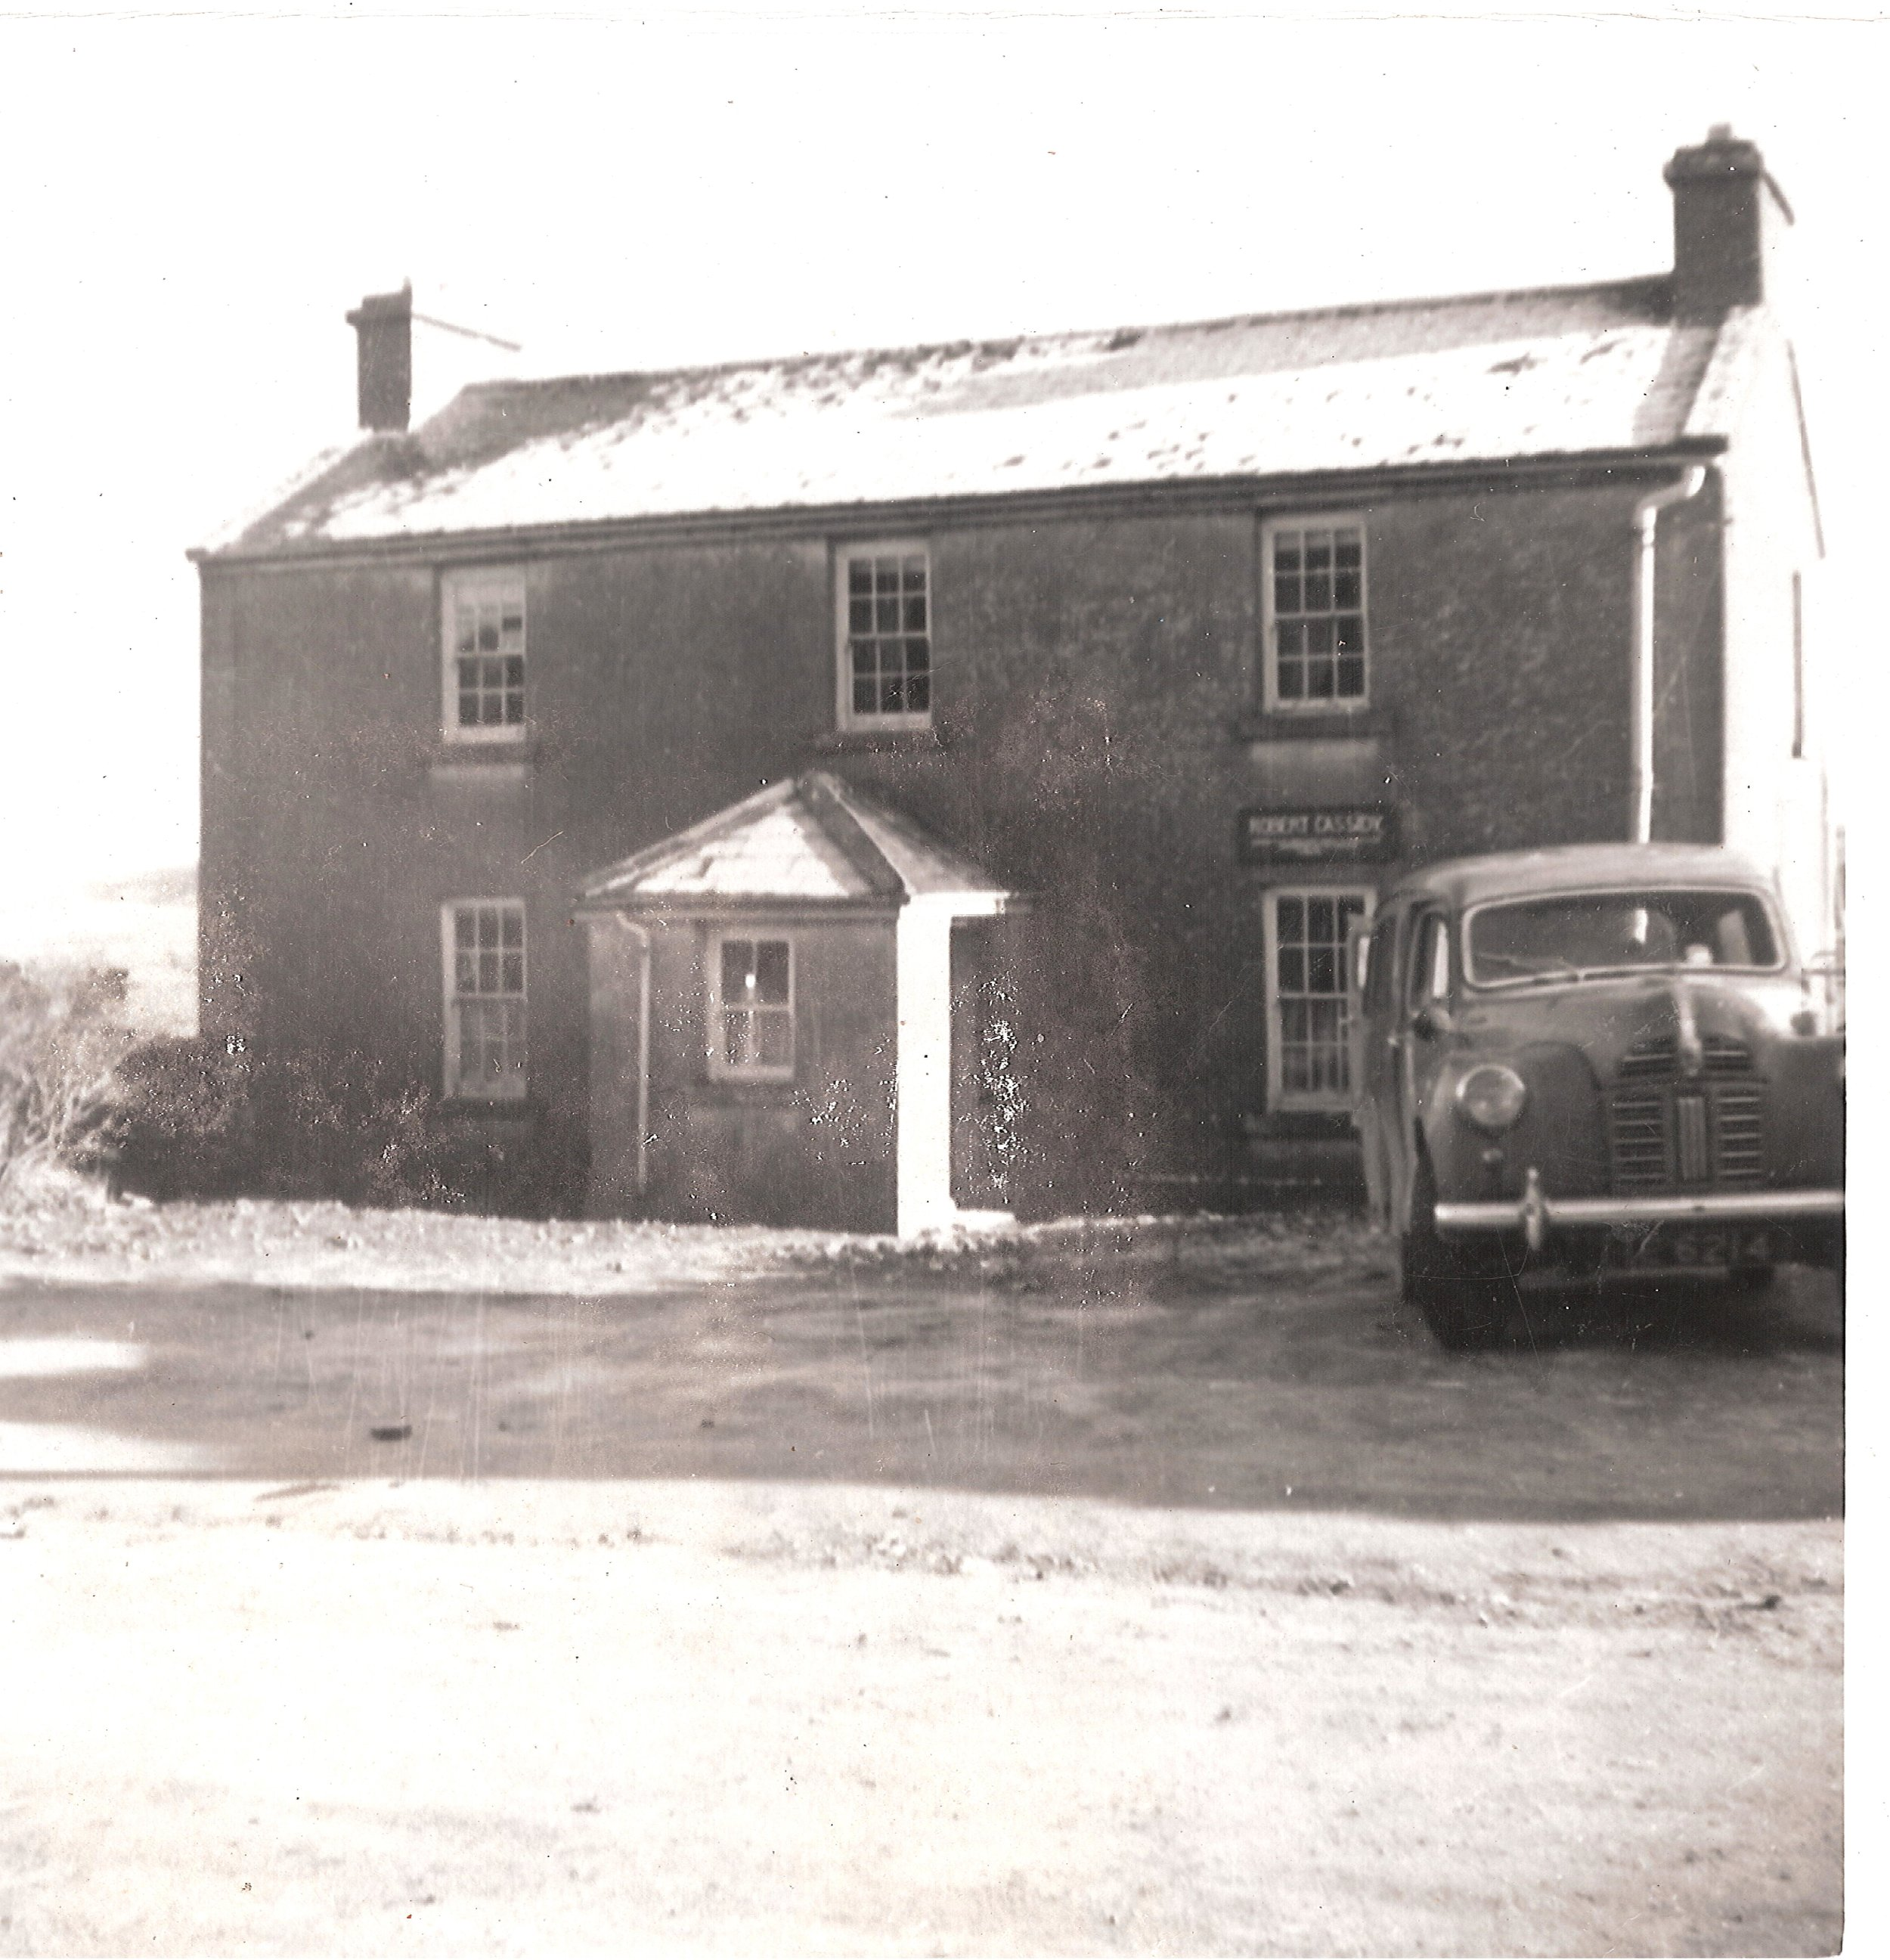 CASSIDY'S in 1956